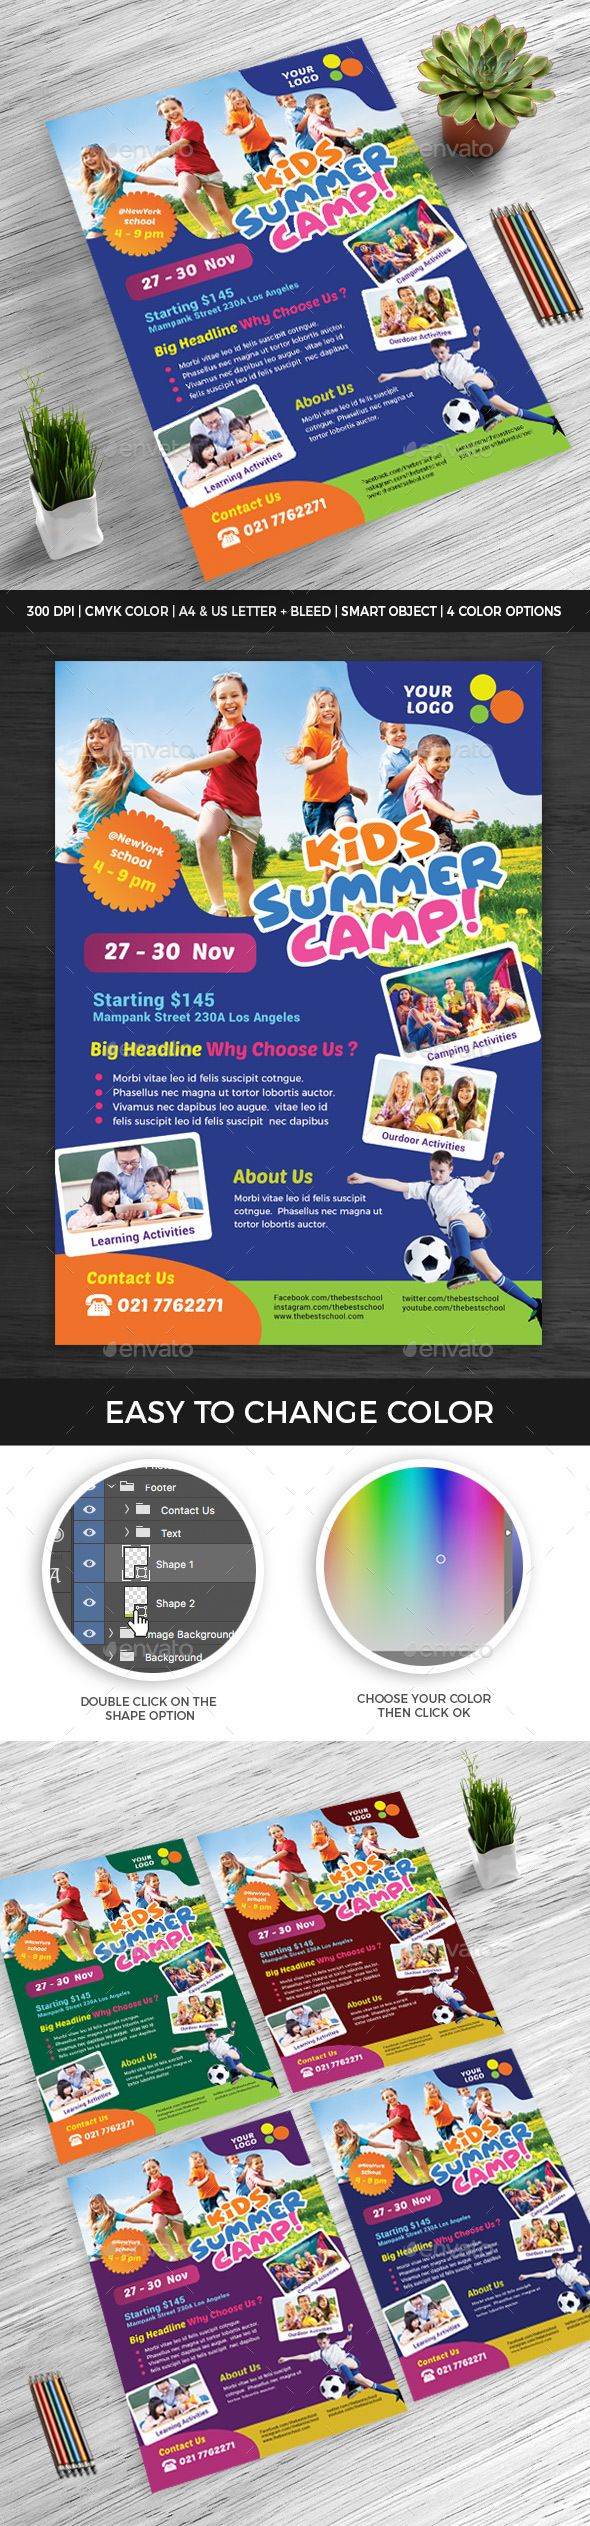 kids summer camp flyer v3 events flyers free flyer templates business flyer